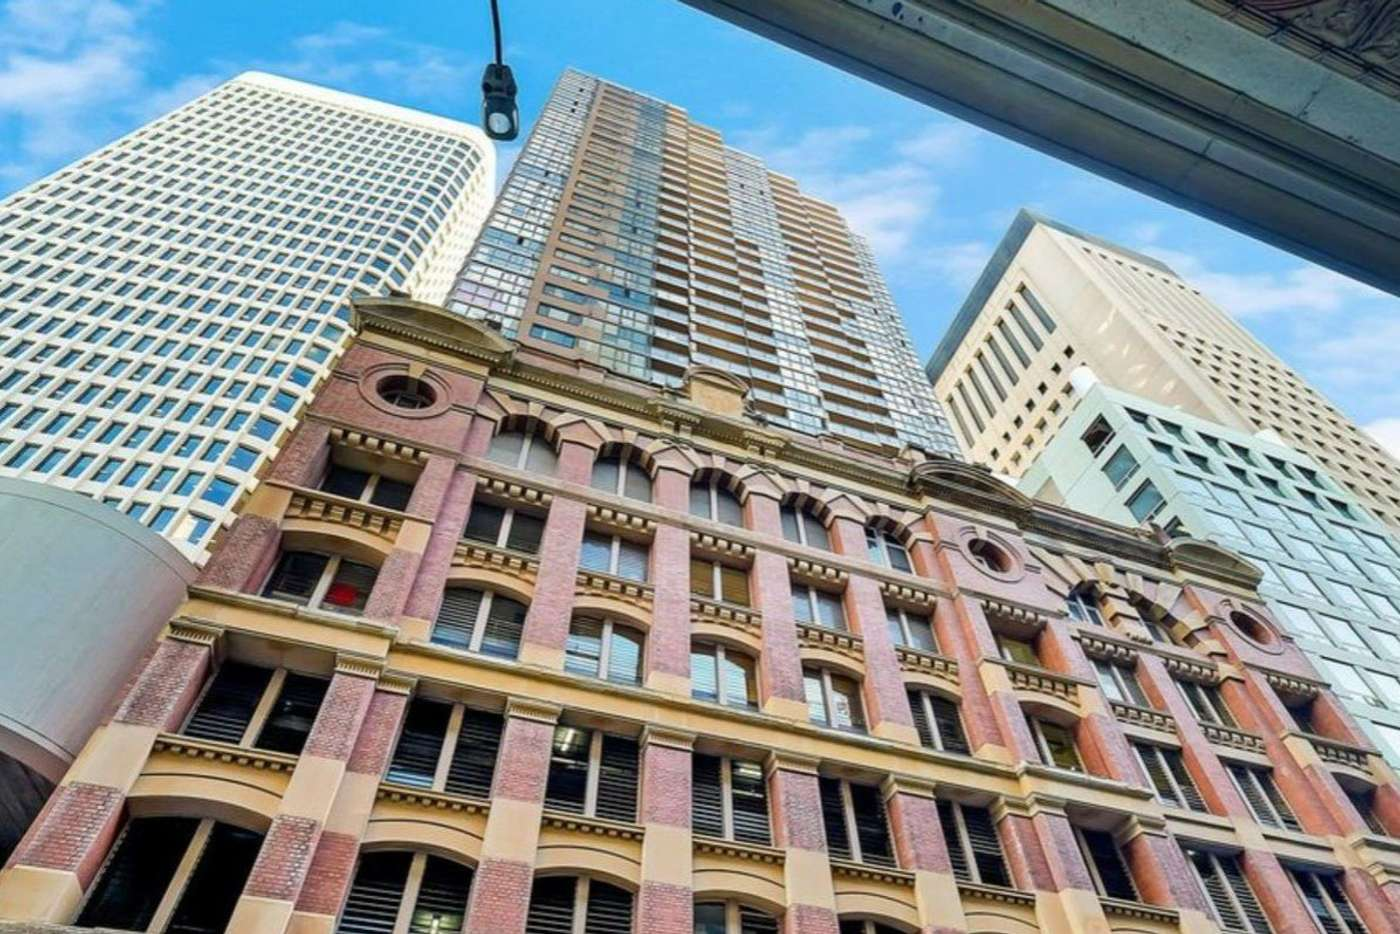 Main view of Homely apartment listing, 267 Castlereagh Street, Sydney NSW 2000